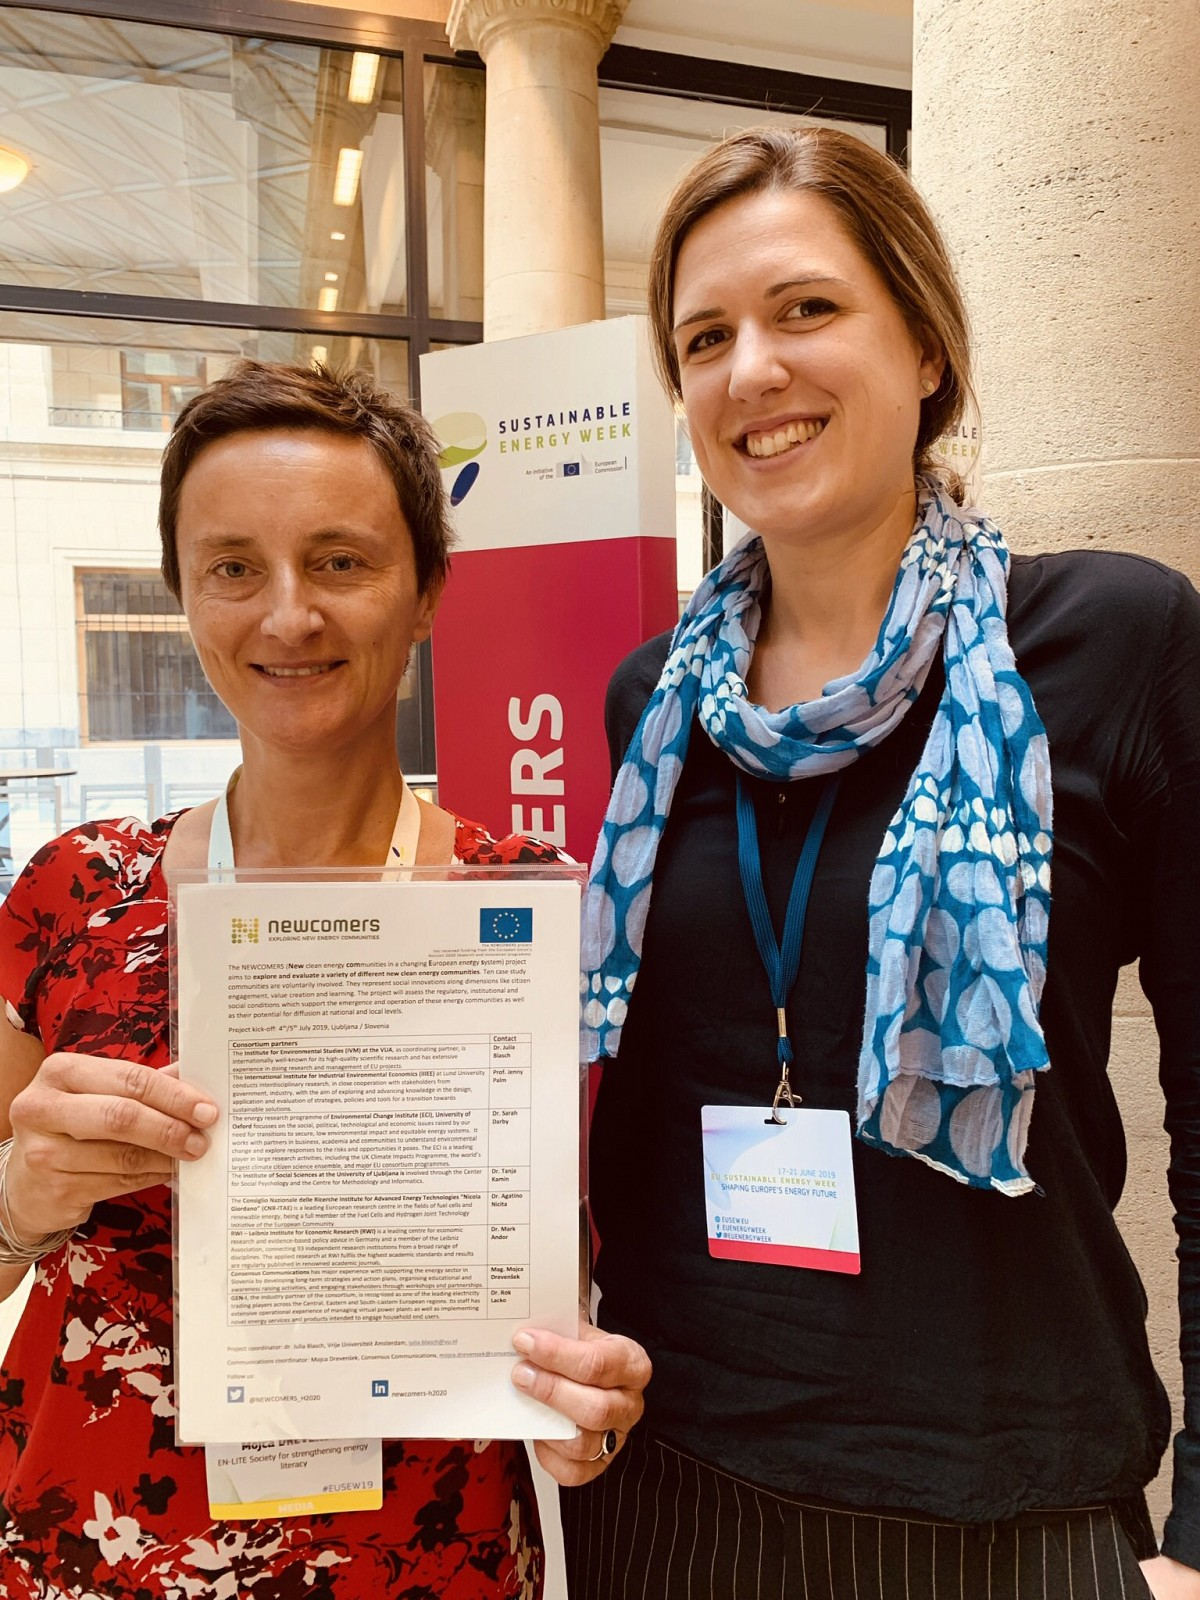 Dr. Julia Blasch and Mag. Mojca Drevenšek at EU Sustainable Energy Week.